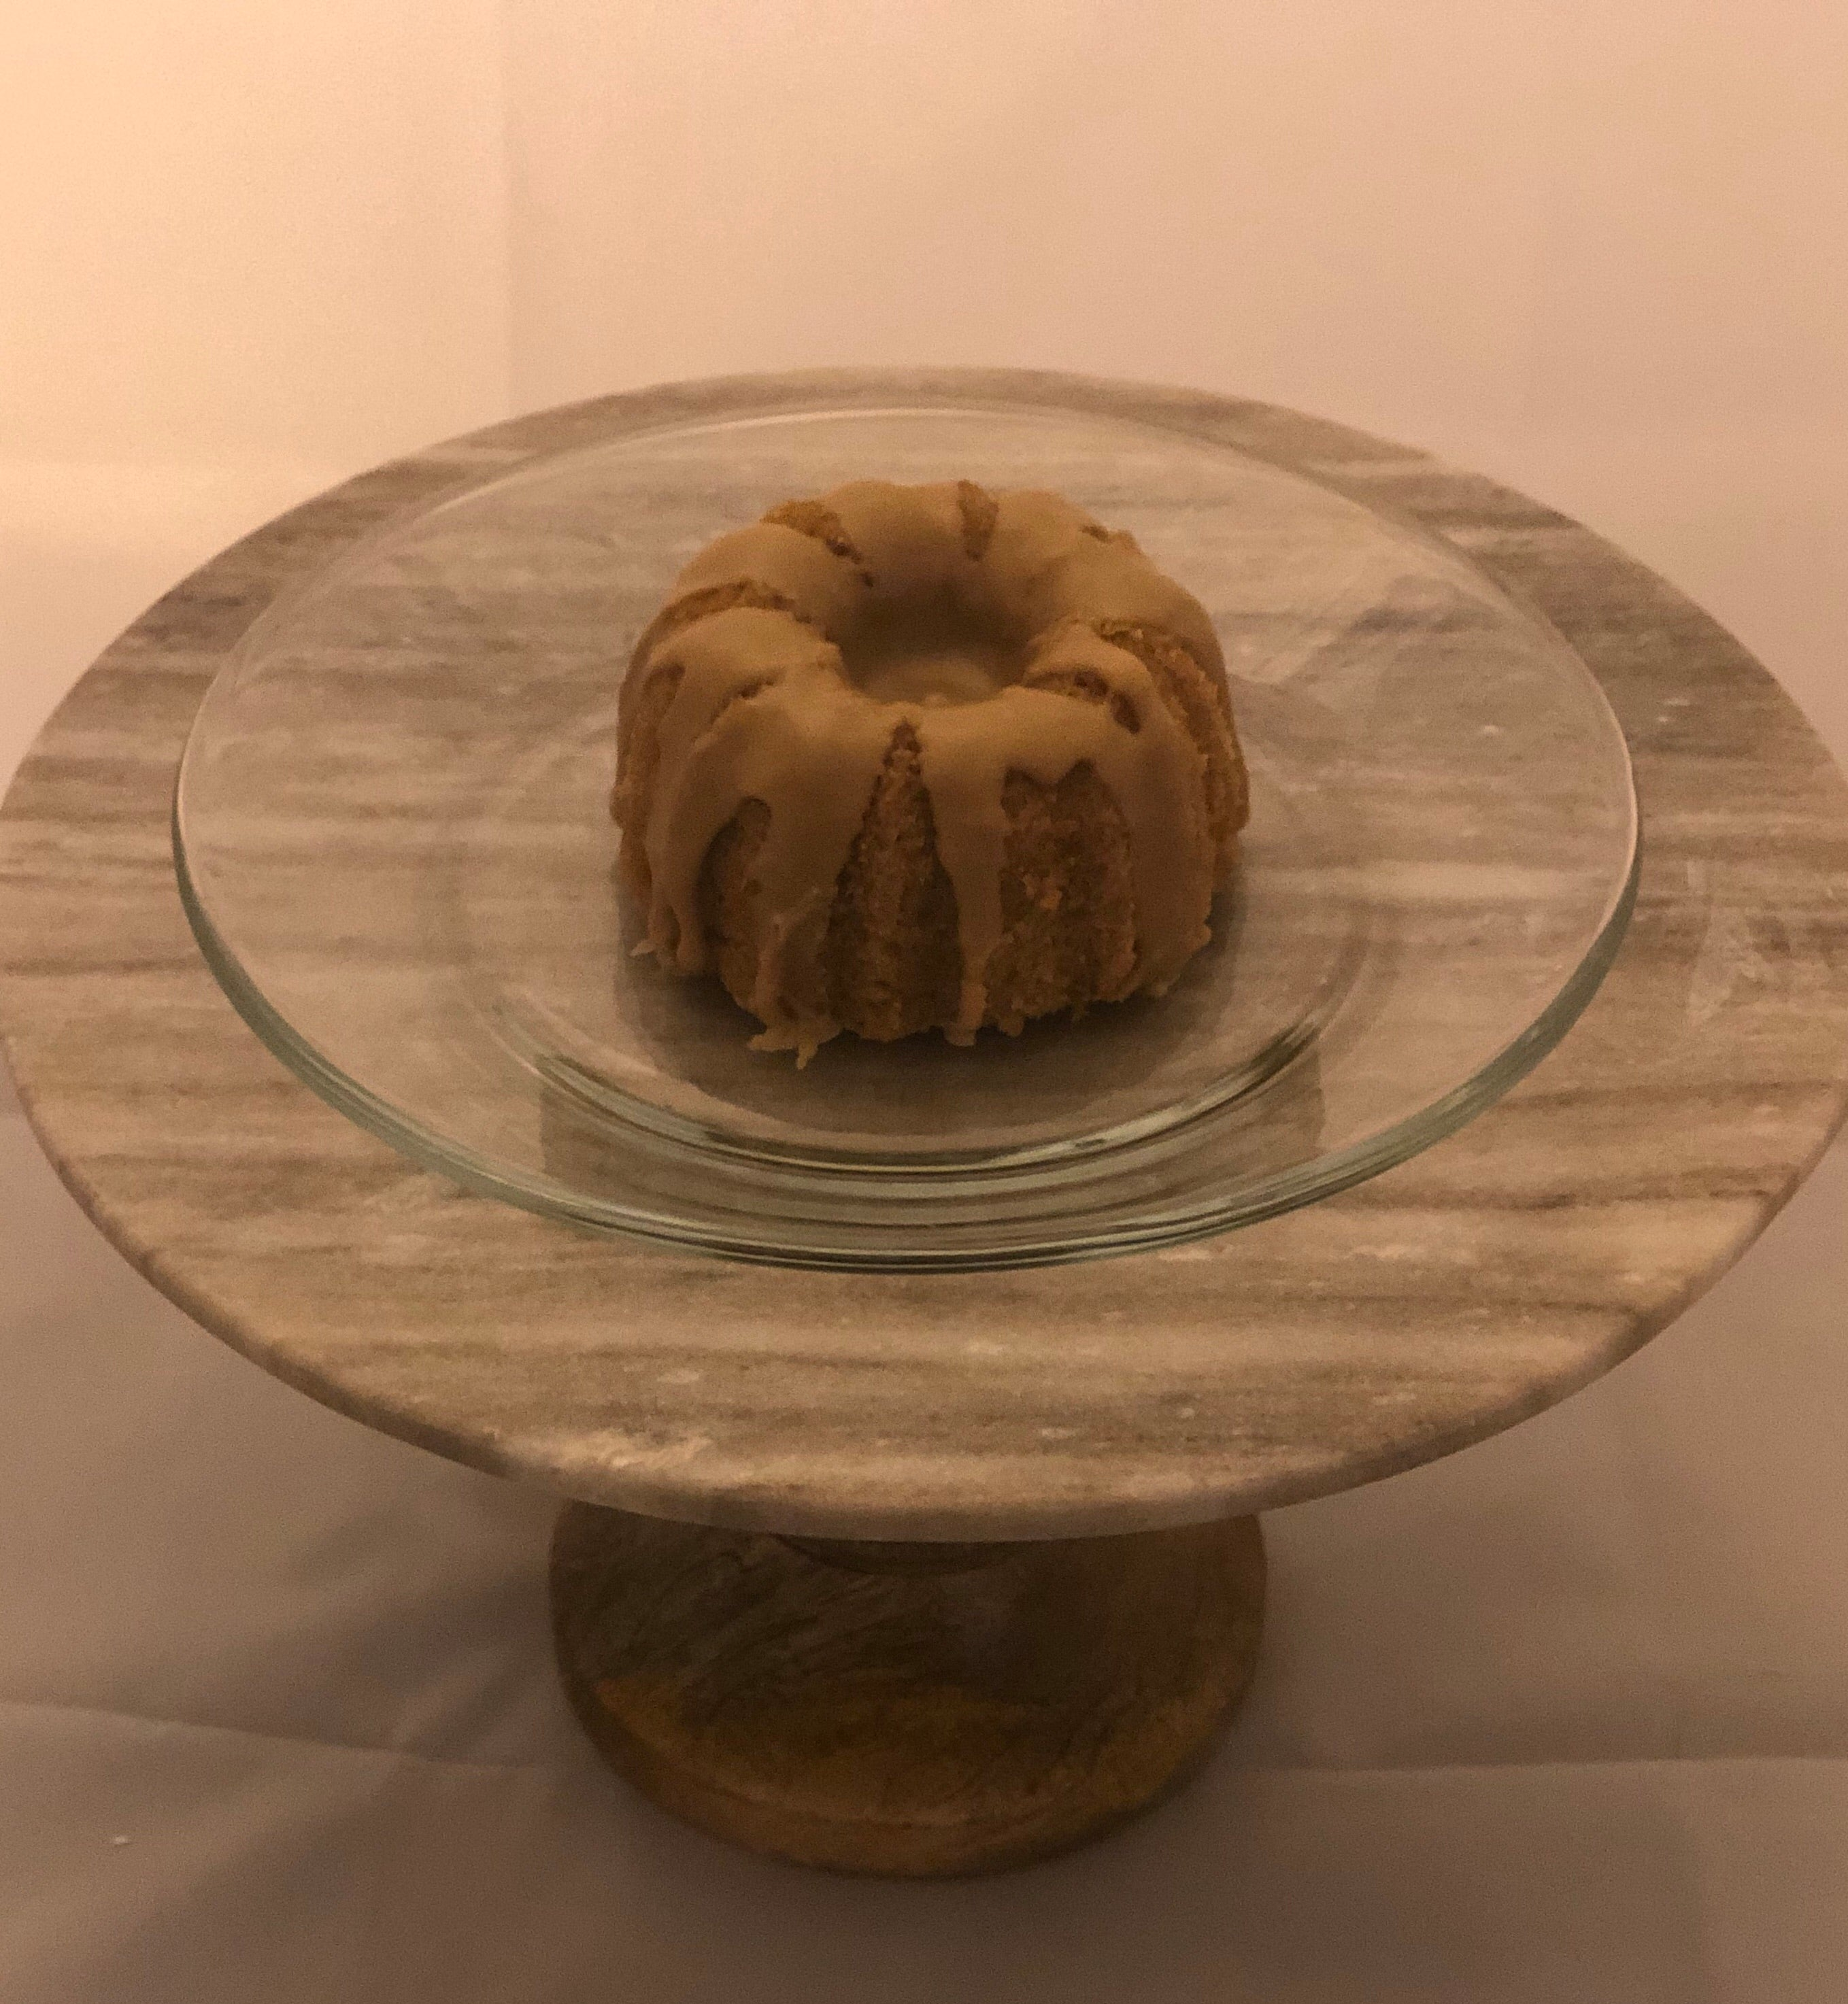 Salted Caramel Mini Bundt Cakes (Gluten and Dairy Free)